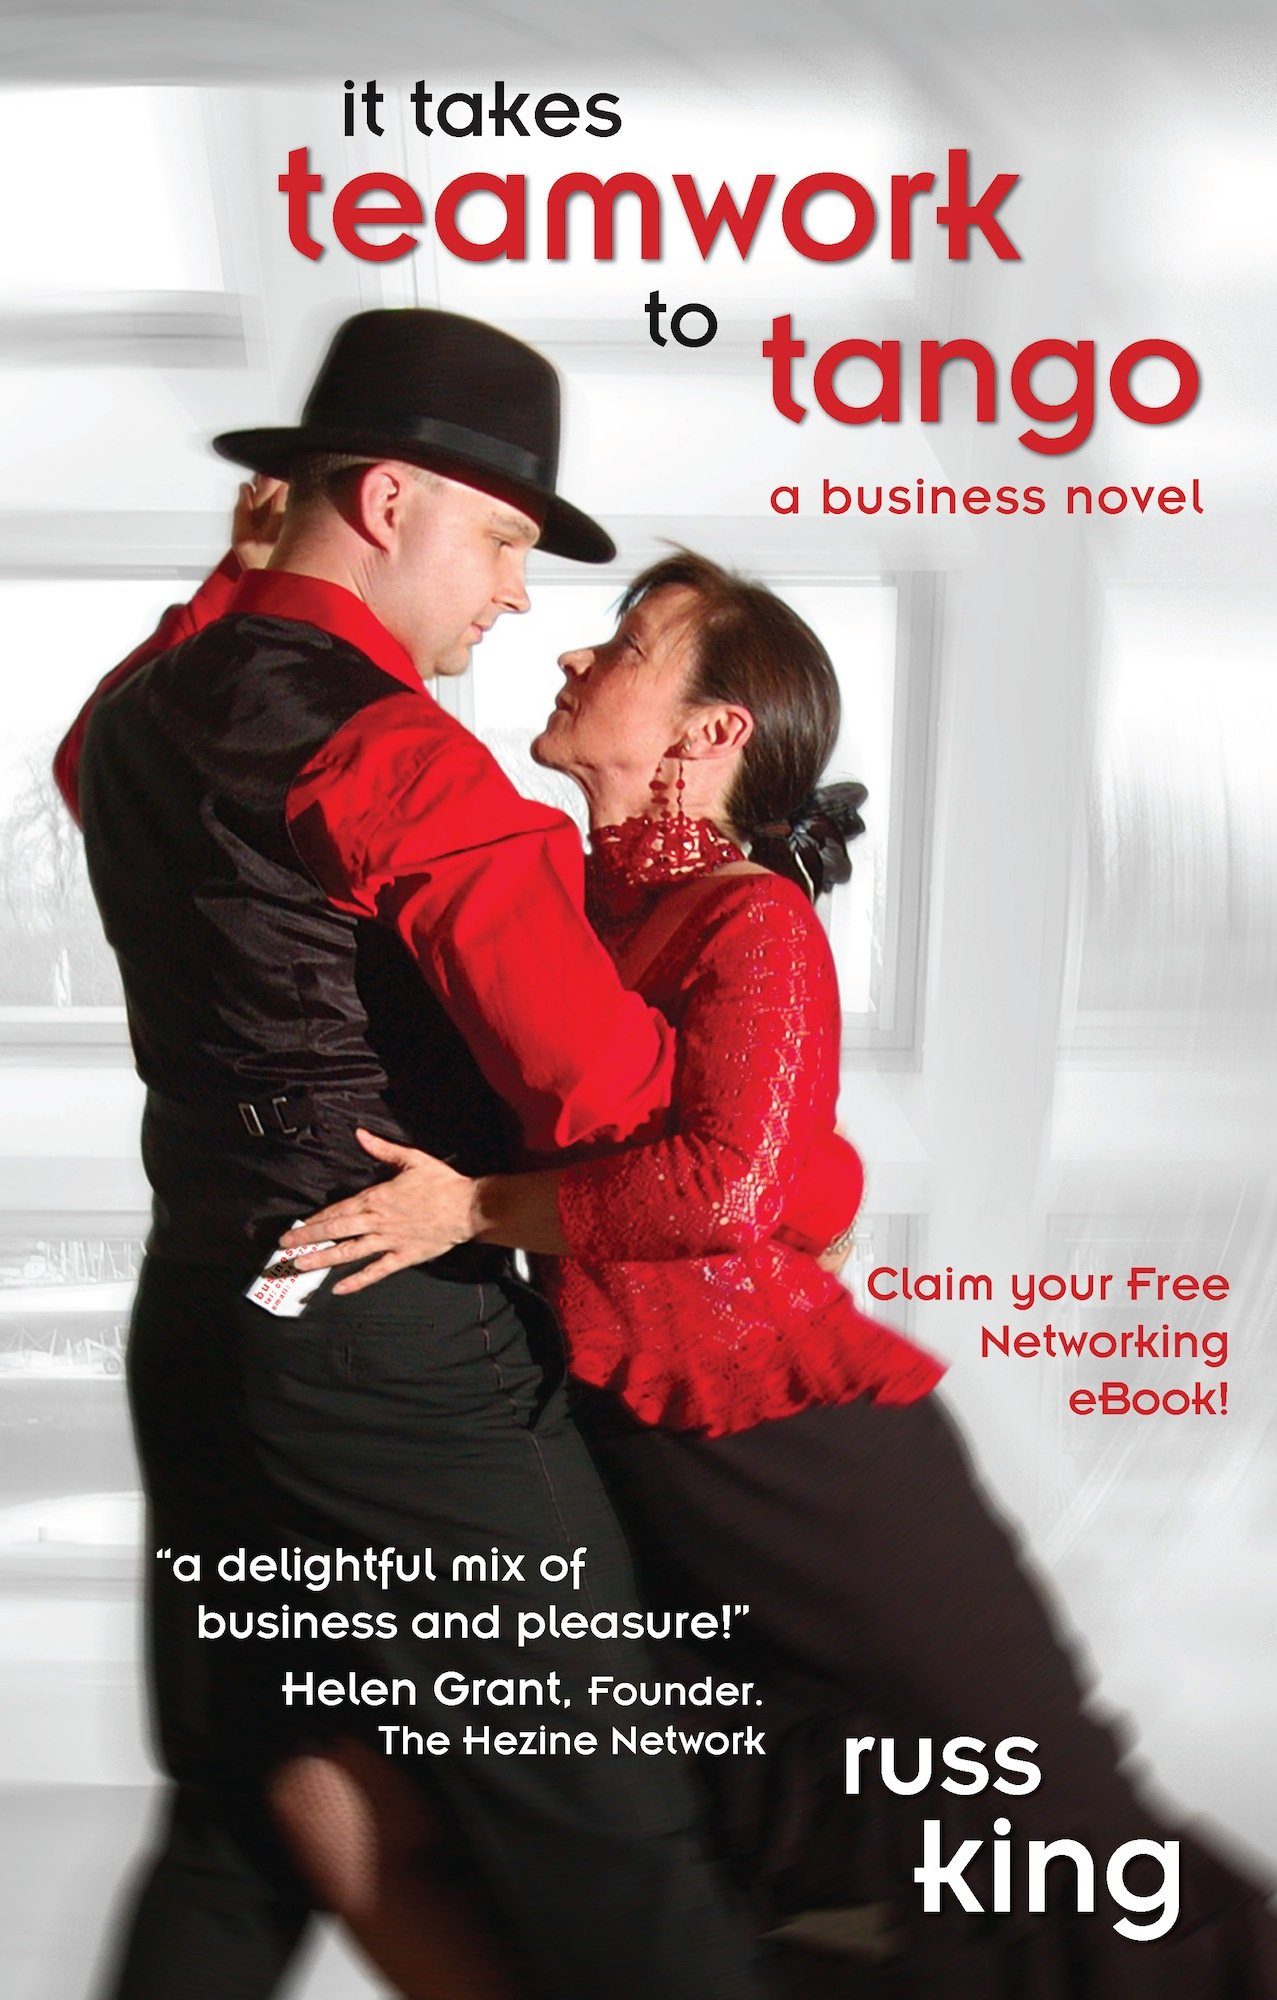 tango dating phone number